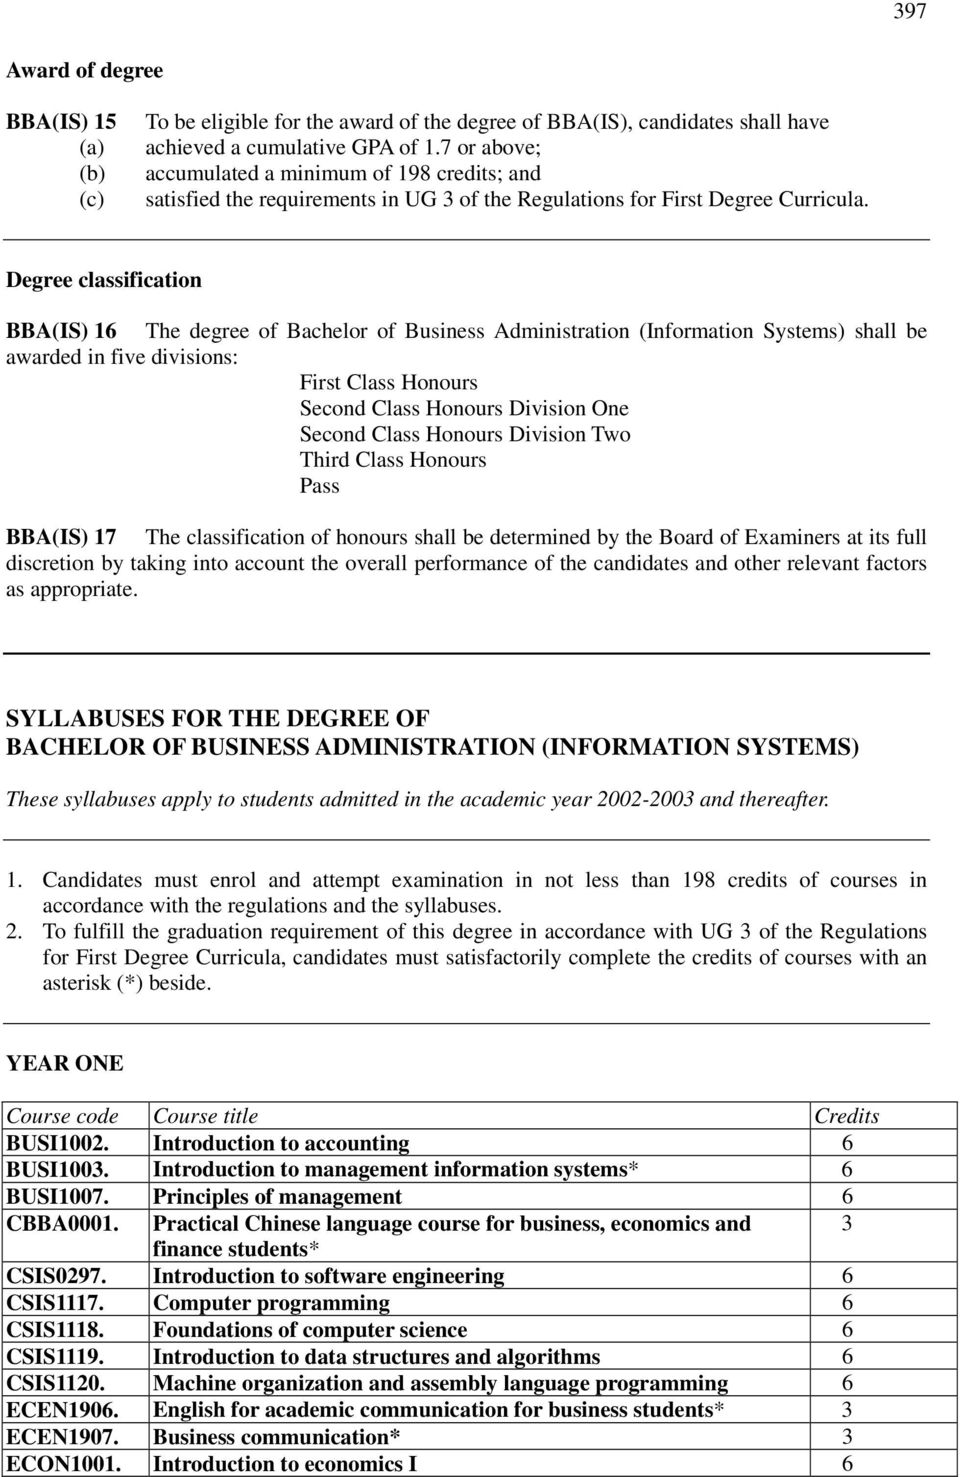 Regulations For The Degree Of Bachelor Of Business Administration Information Systems Bba Is Pdf Free Download